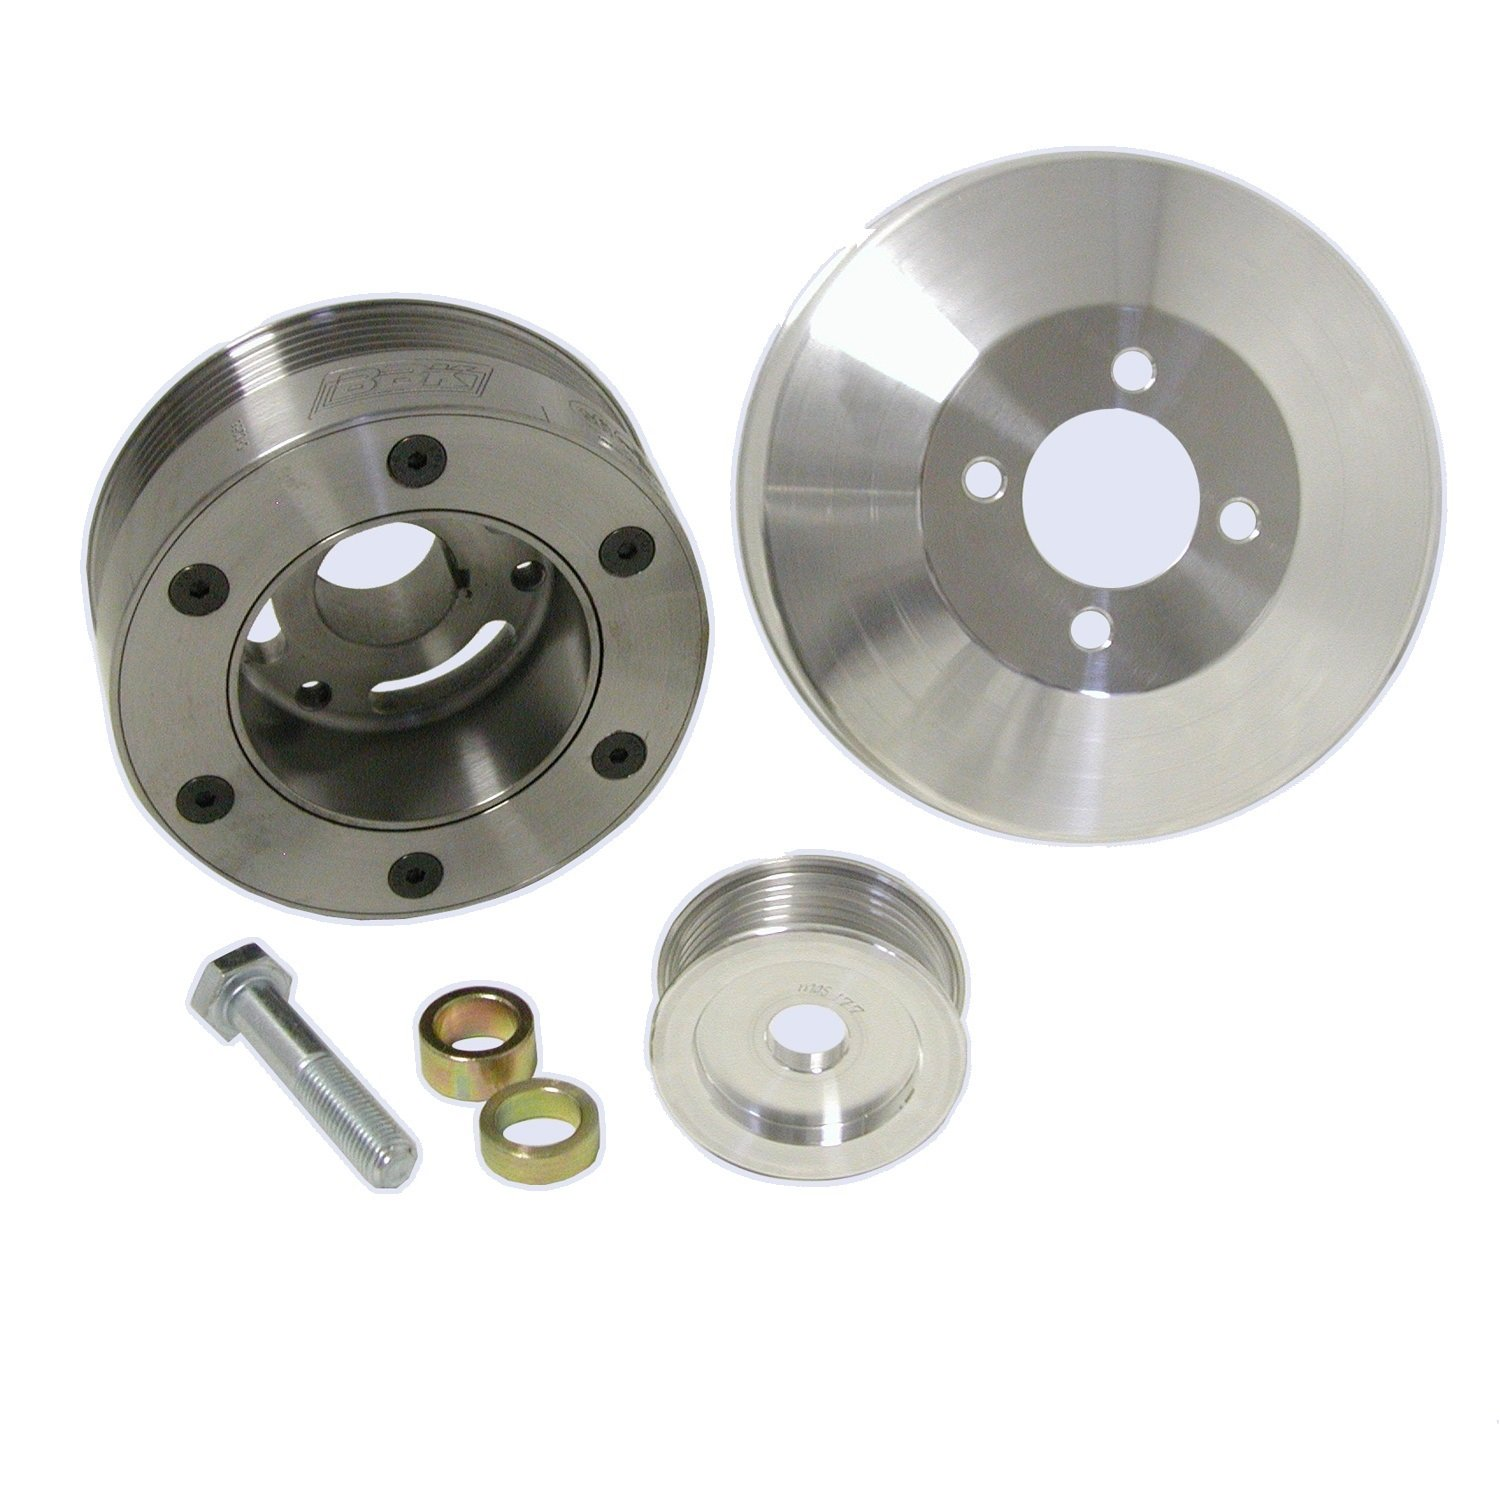 BBK 1564 Underdrive Pulley Kit for Ford Mustang GT/Cobra 4.6L - 3 Piece SFI Approved Crank Pulley Plus Aluminum WP and Alt